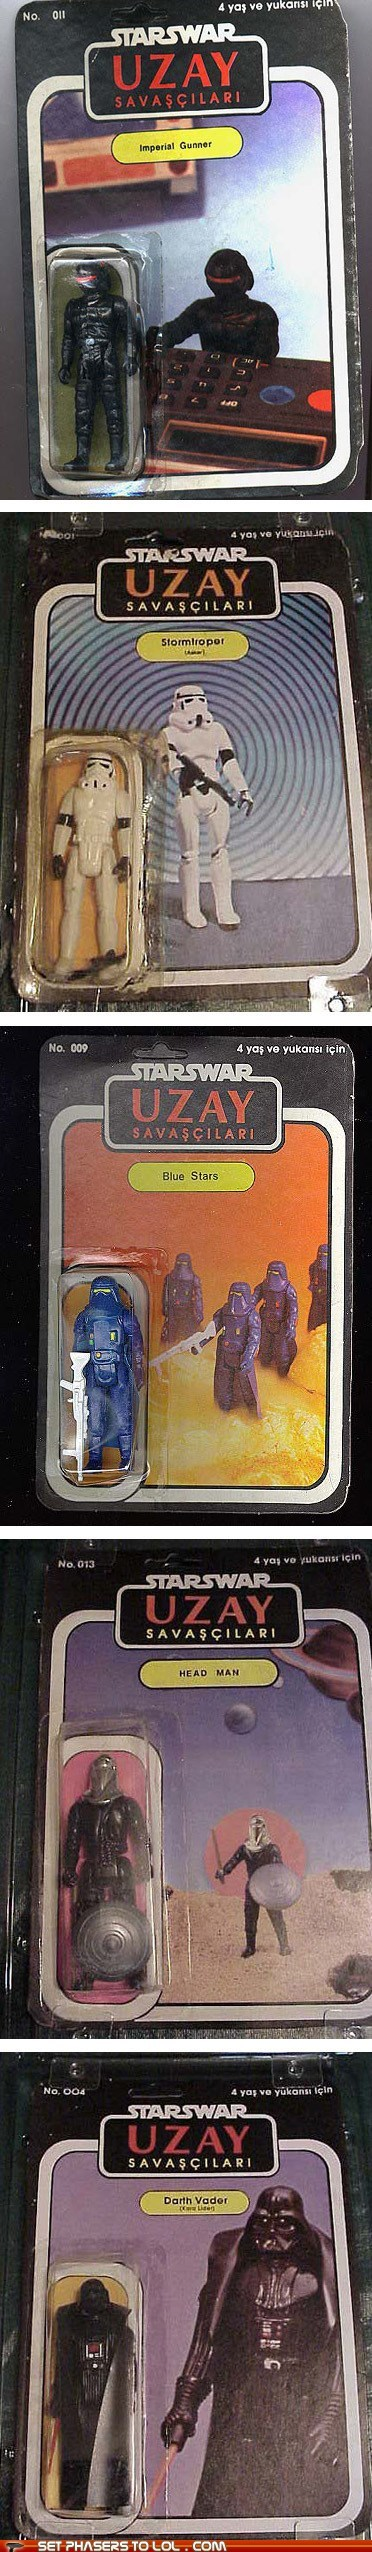 Bootleg Star Wars Action Figures